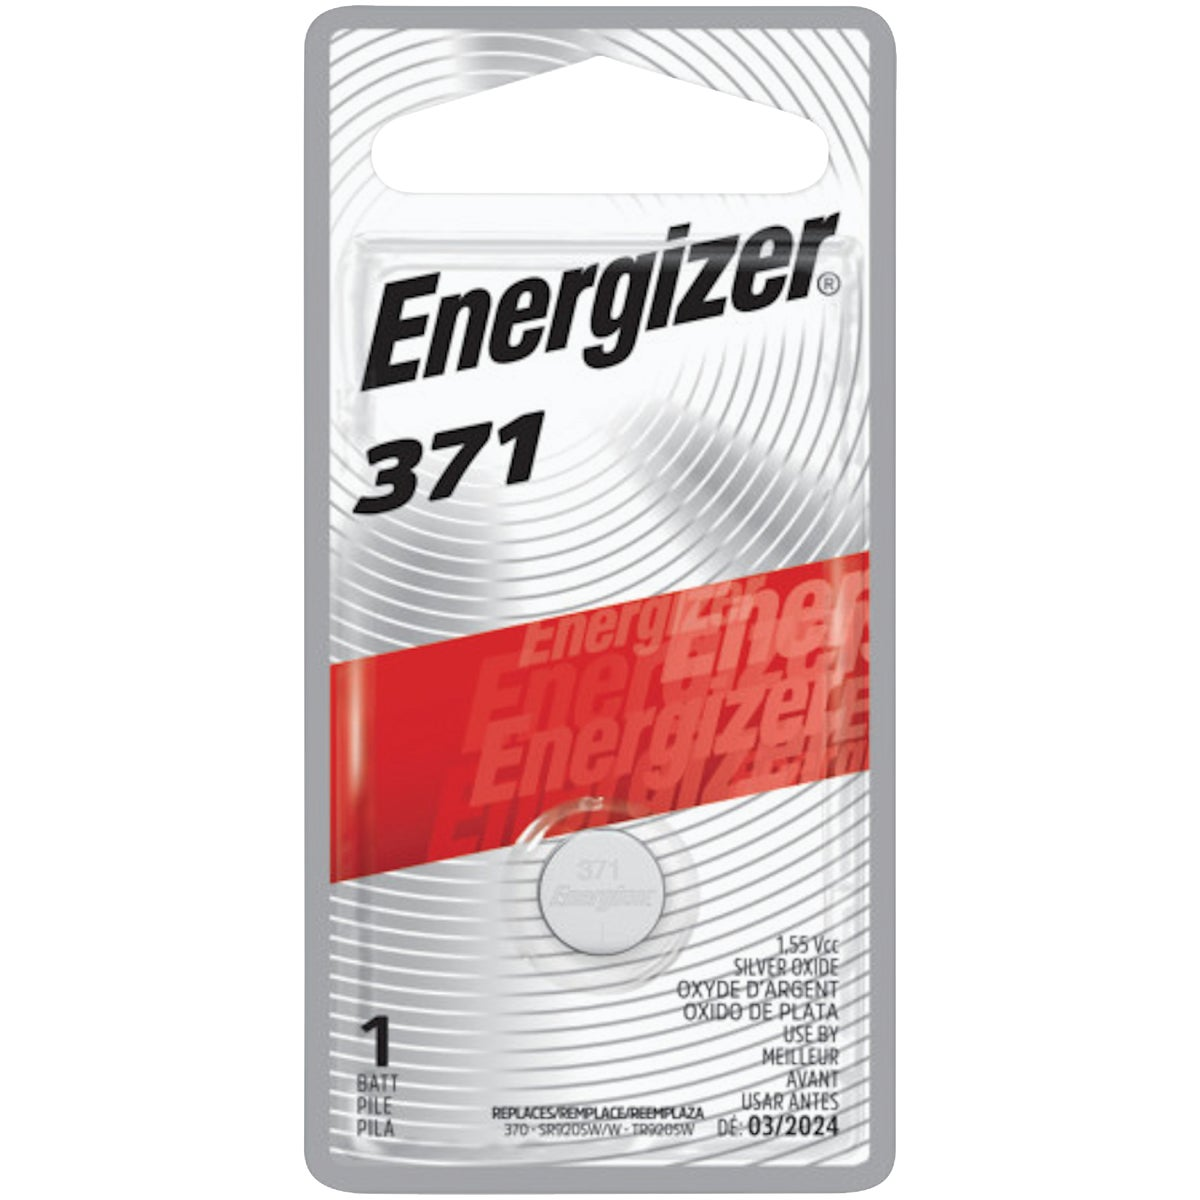 1.5V WATCH BATTERY - 371BPZ by Energizer